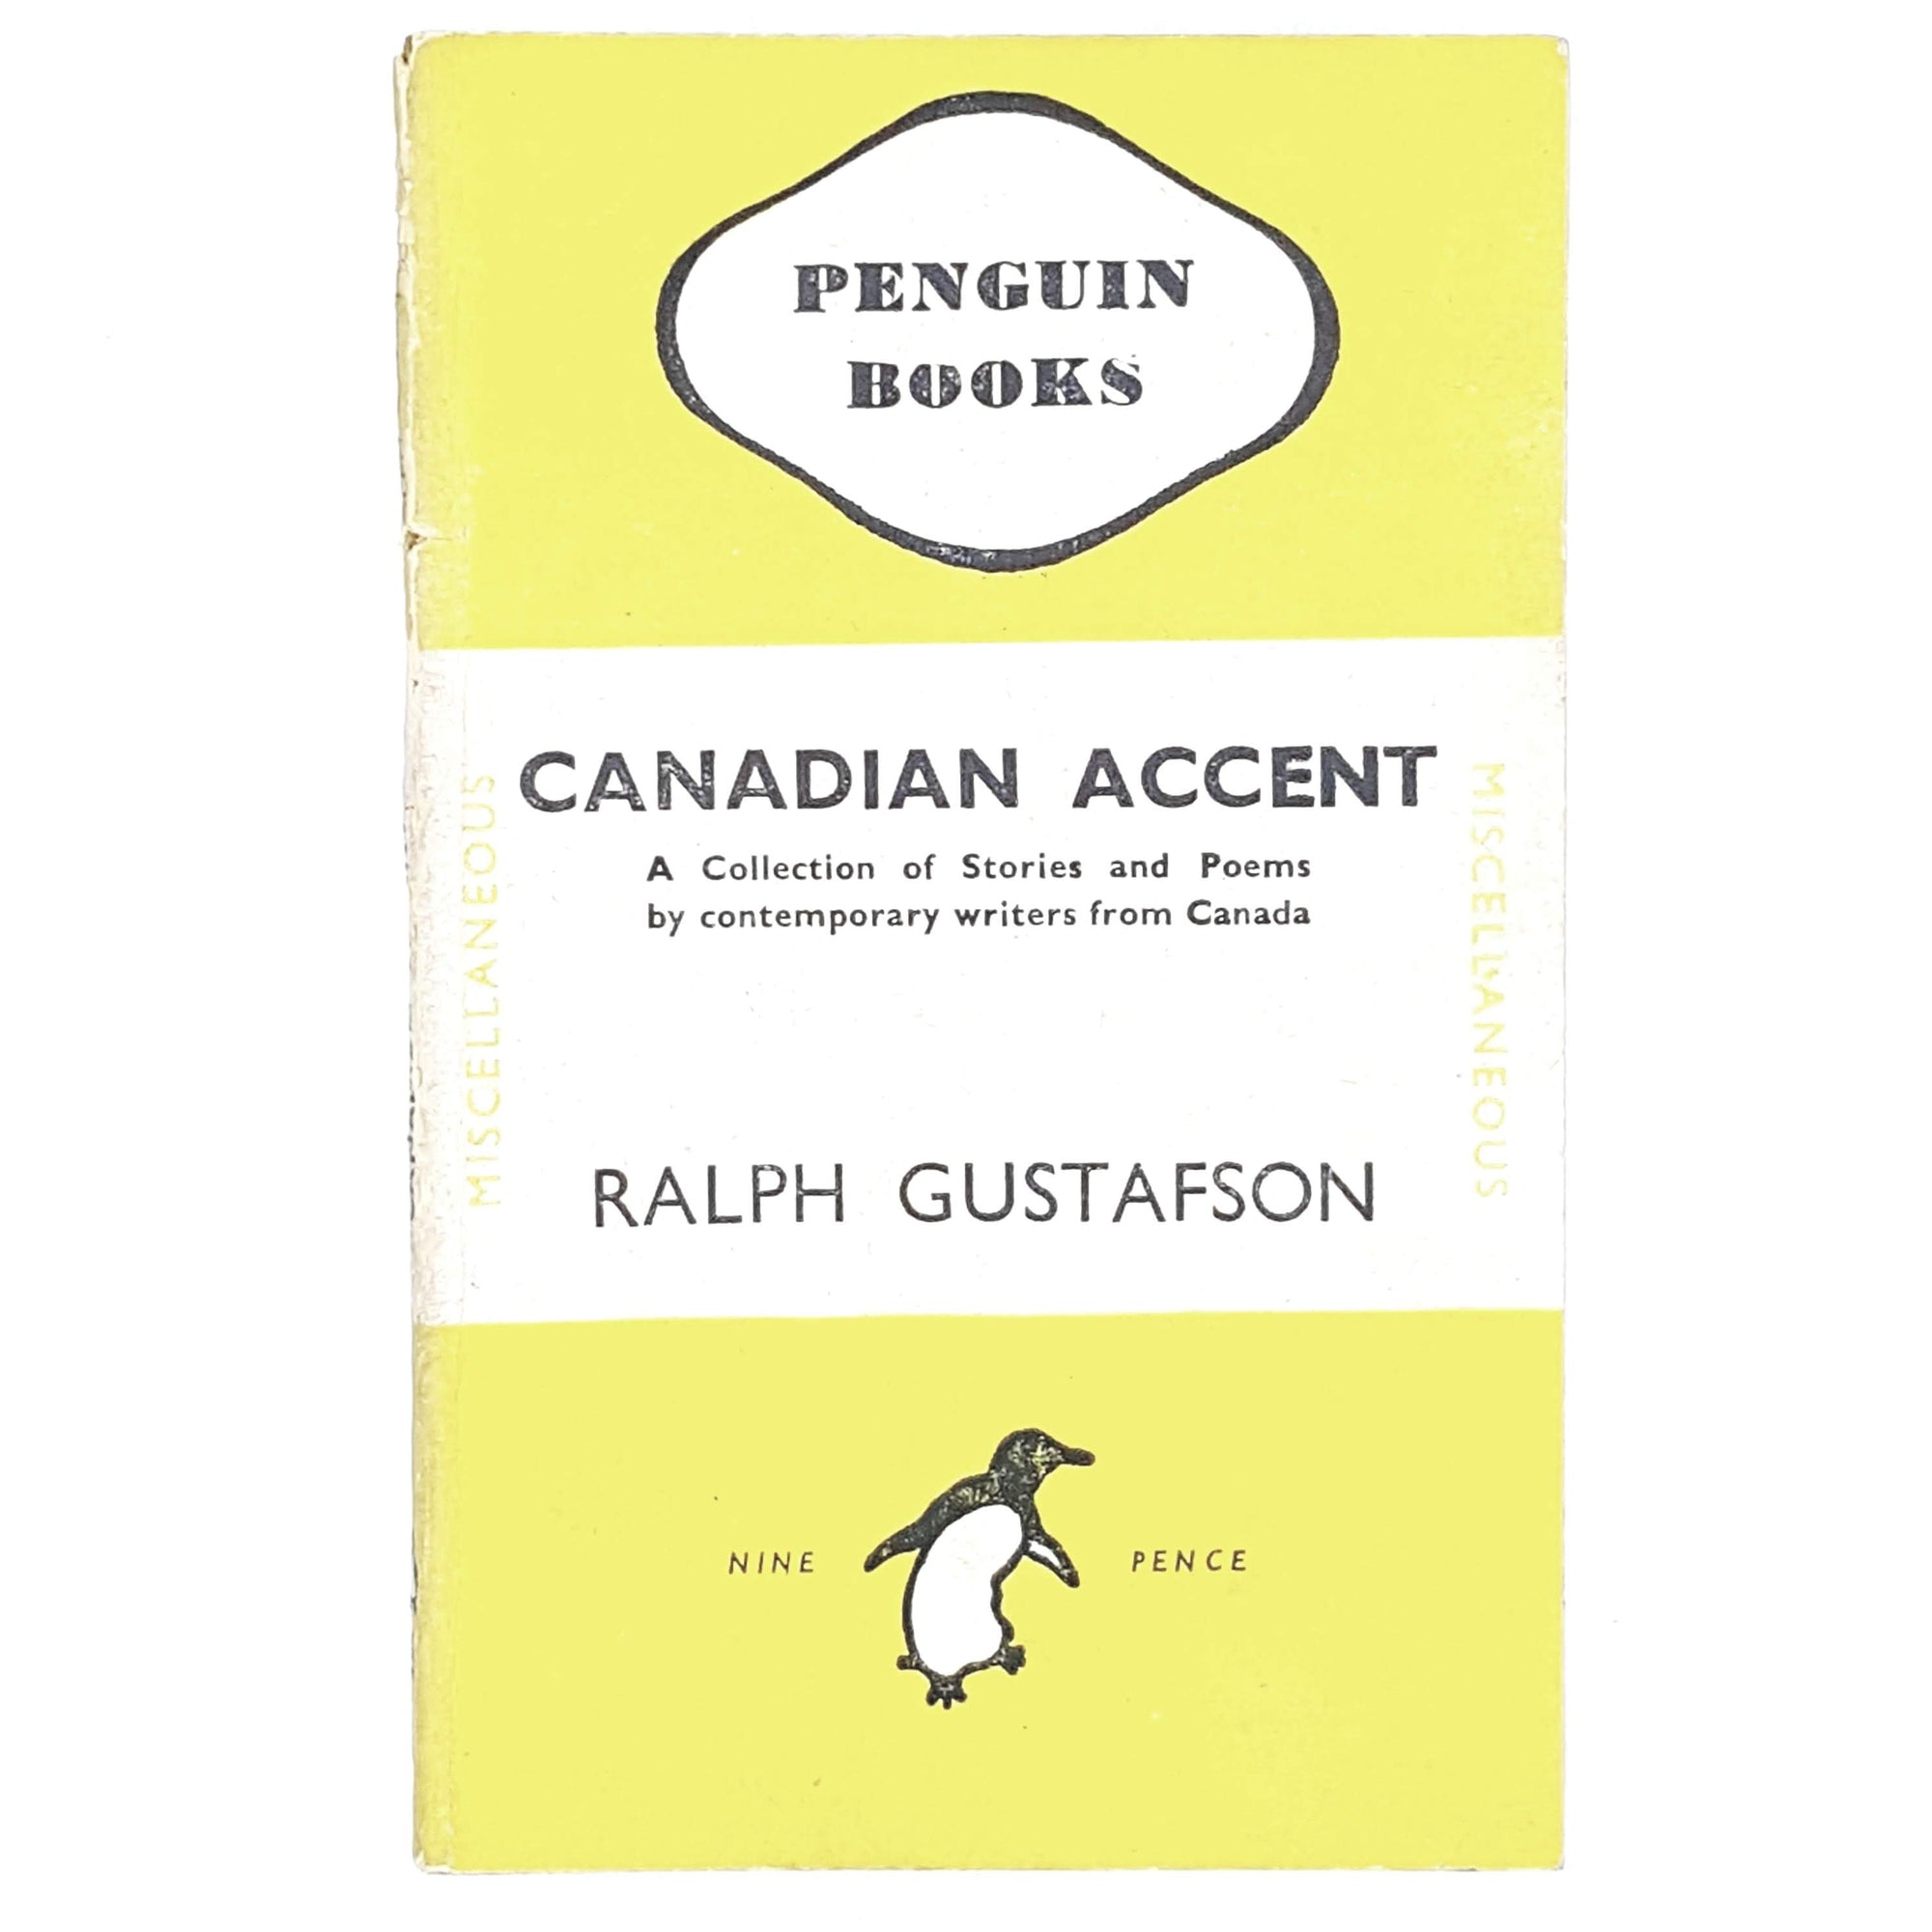 First Edition Penguin Canadian Accent by Ralph Gustafson 1944